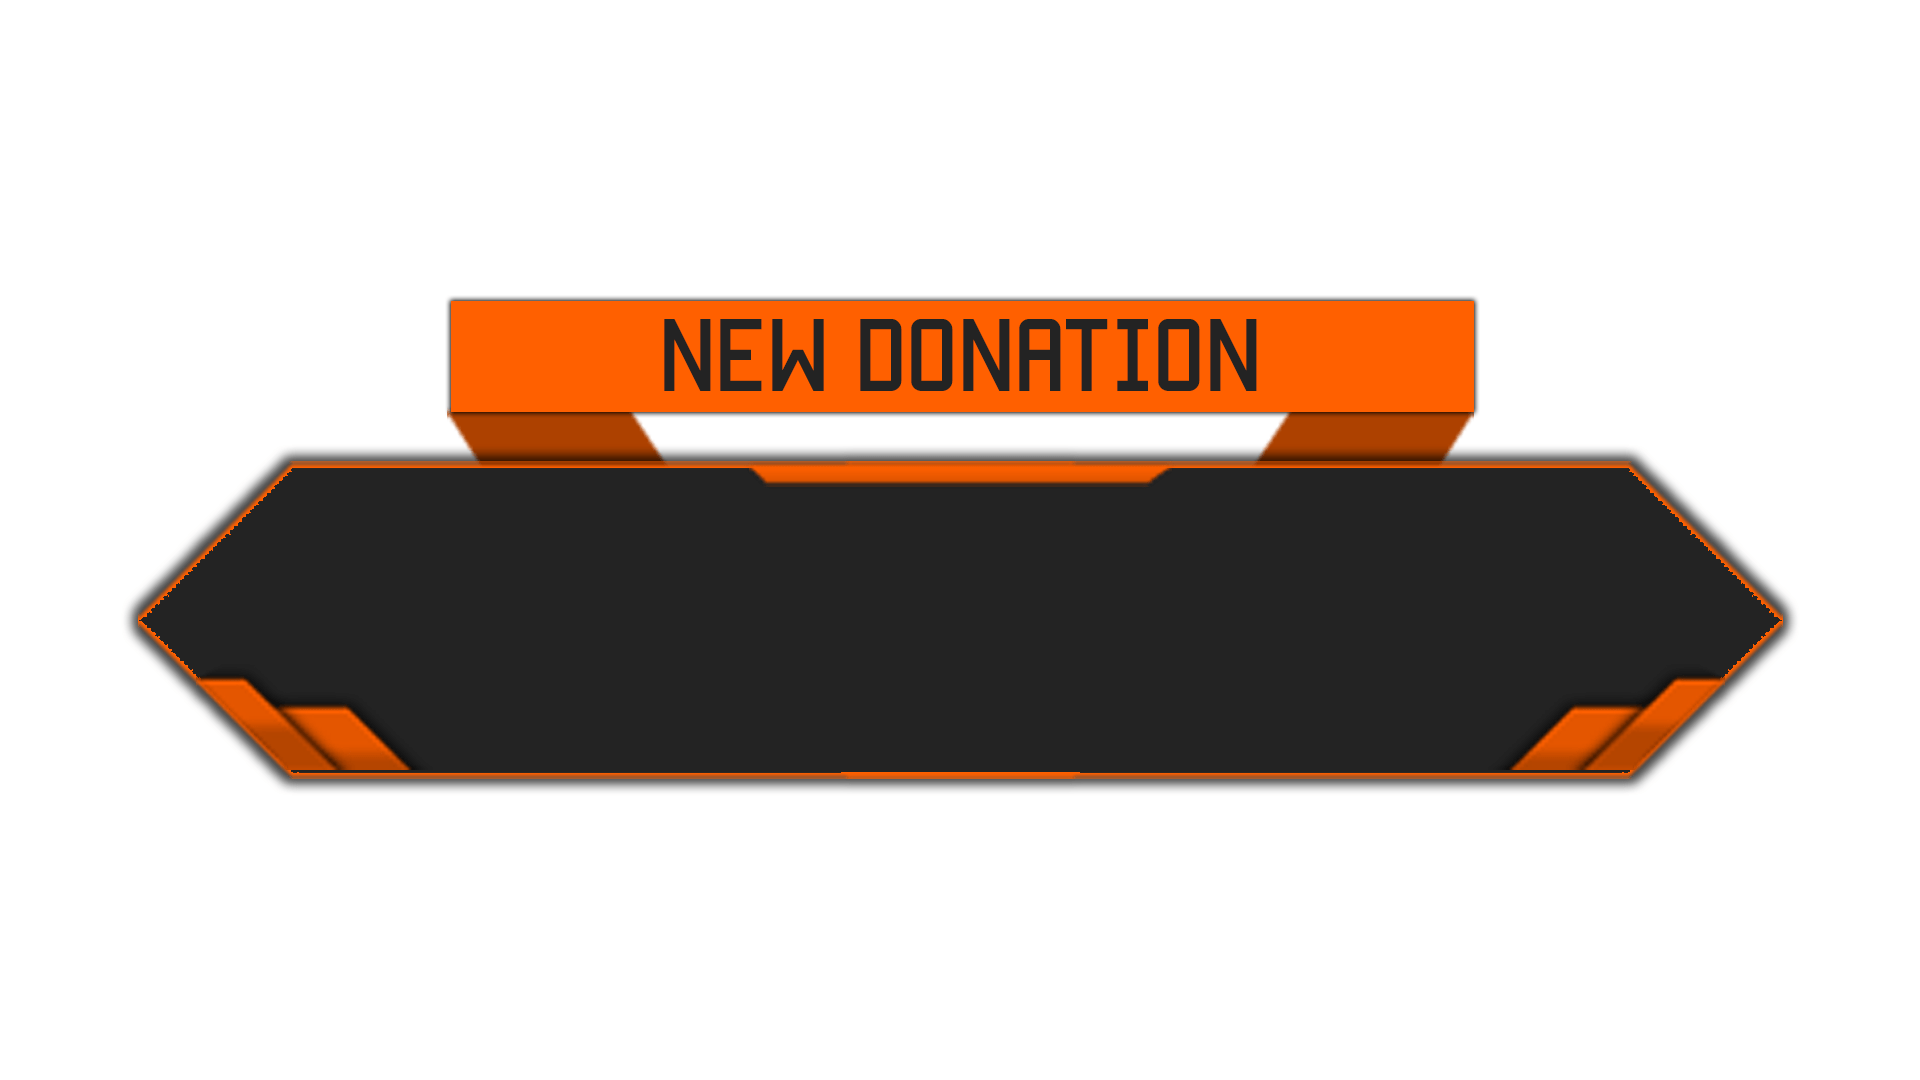 Twitch donation png 8 » PNG Image